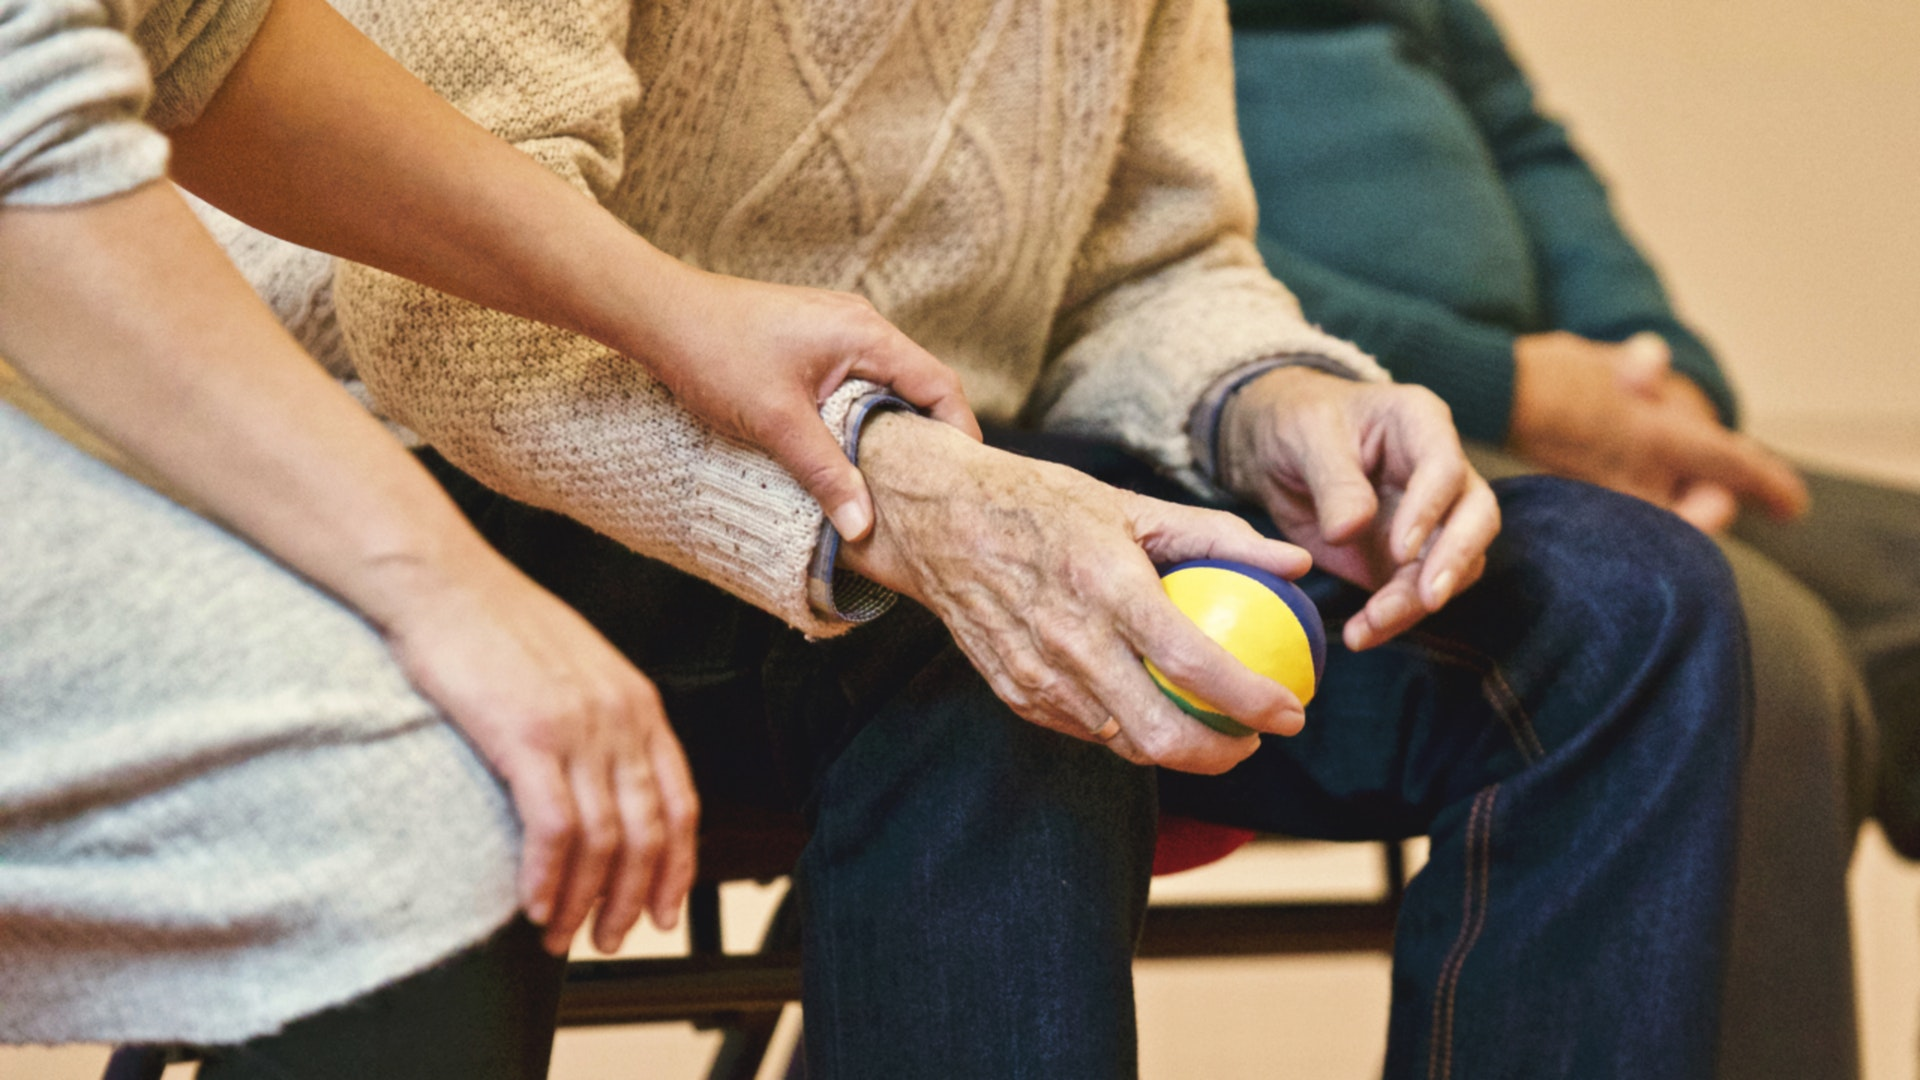 Complete End User Guide To Health Care: Choosing A Nursing Home